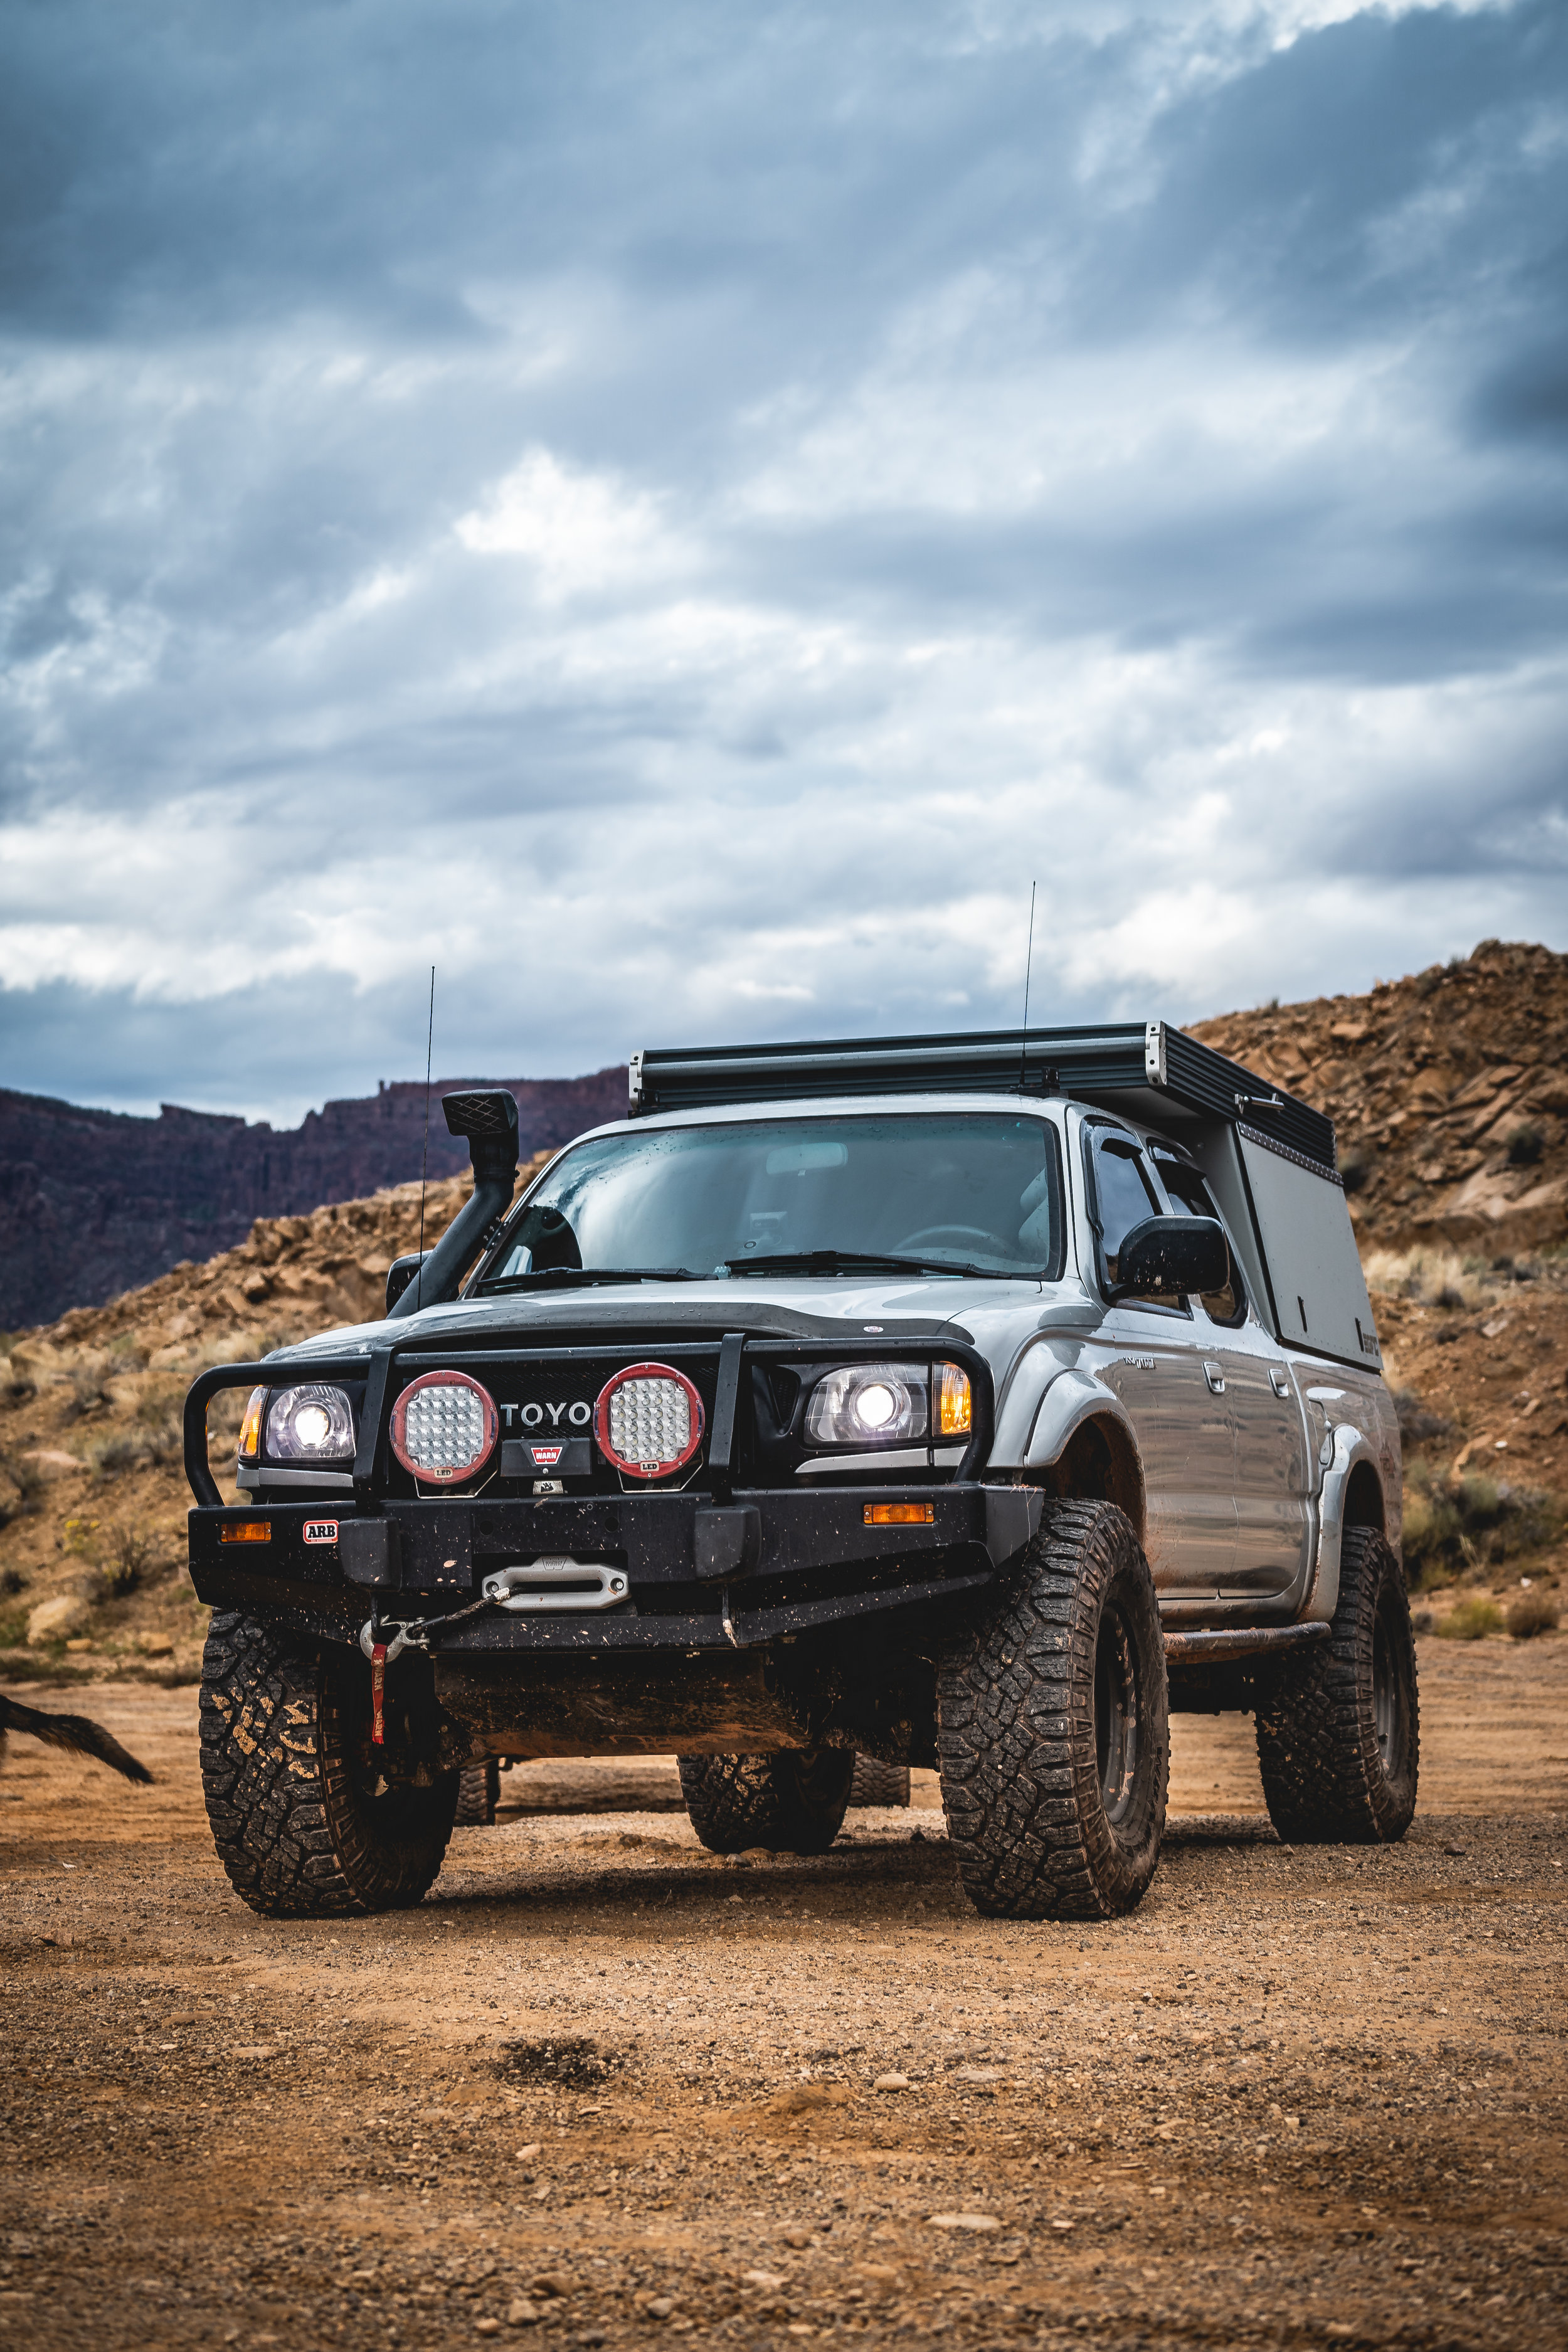 Gfc Equipped First Gen Toyota Tacoma Overland Kitted